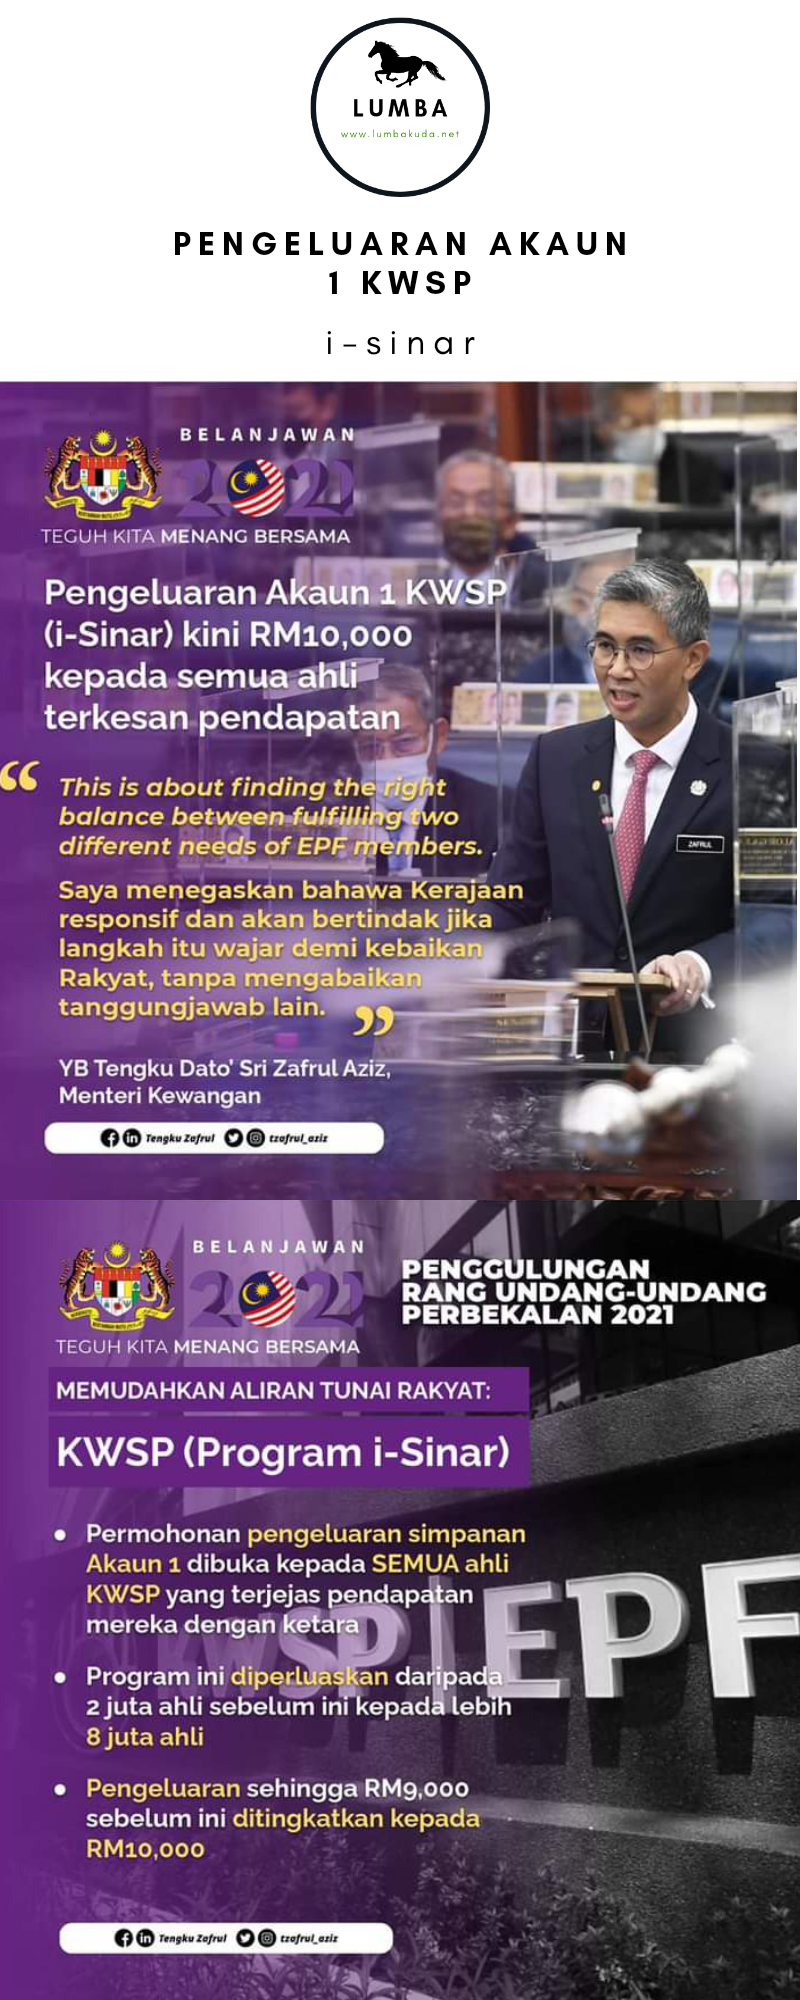 it's a COVID 19 budget, it's a budget for survival & resilience - Tengku Zafrul